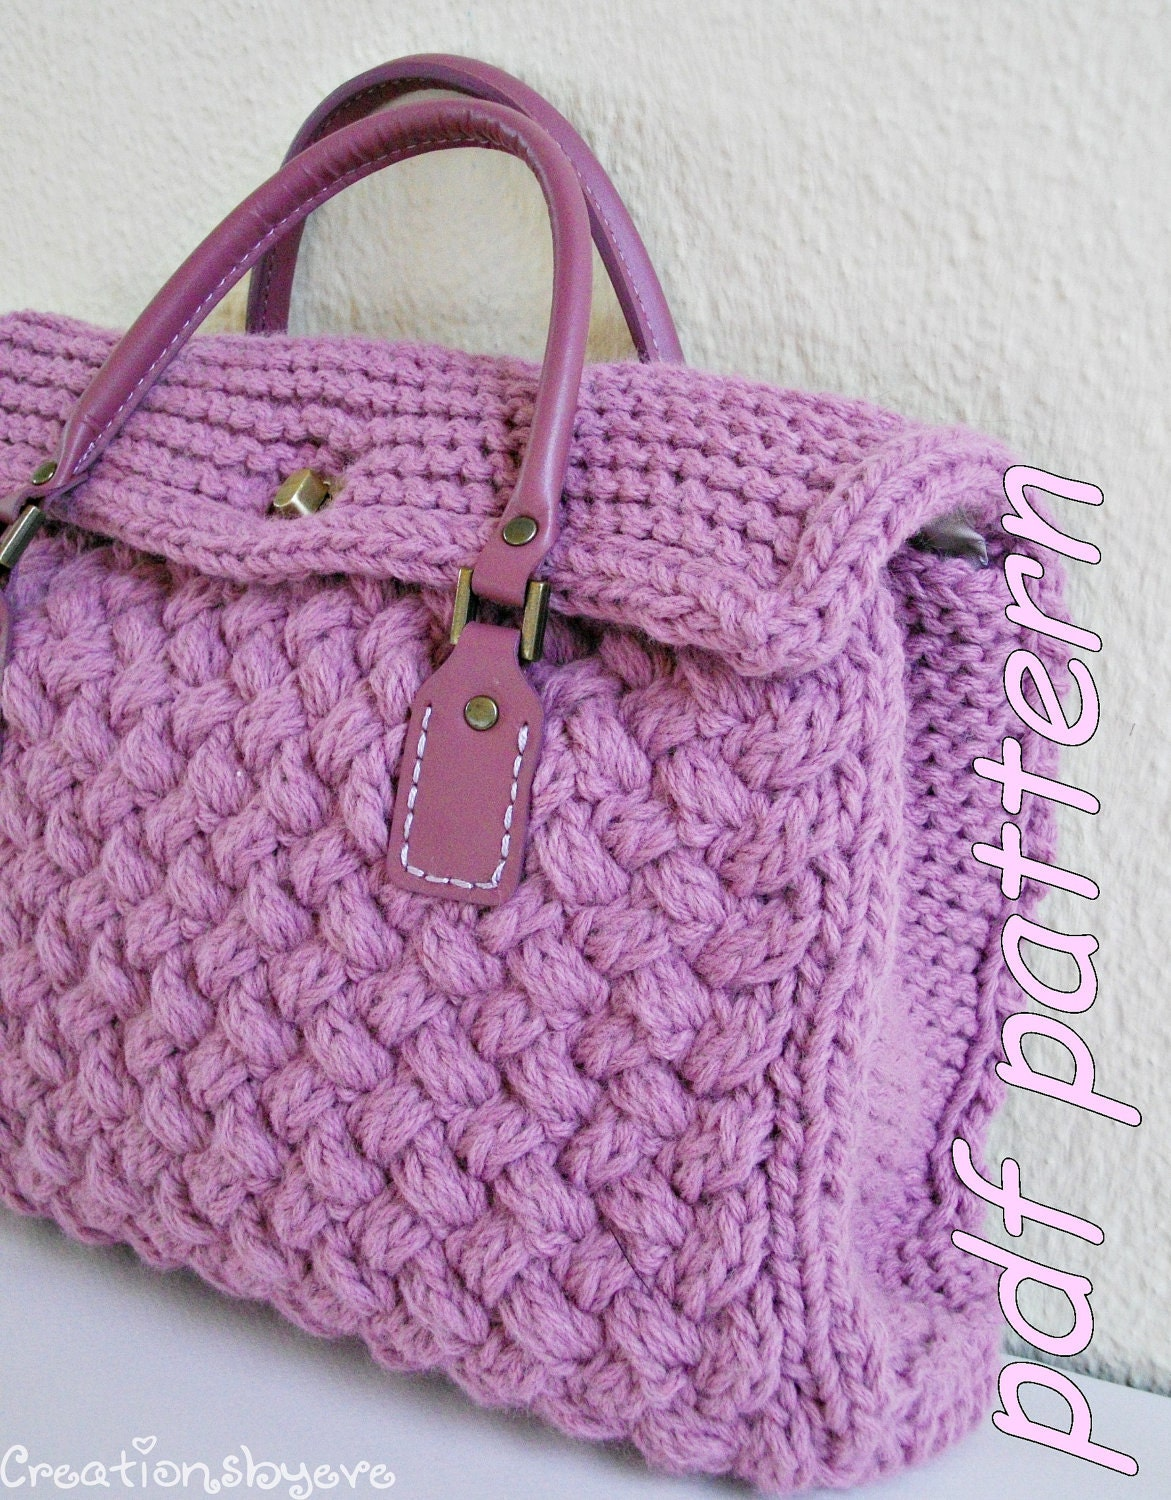 Bag Knitting Patterns : Stylish small textured hand-knit bag PDF pattern